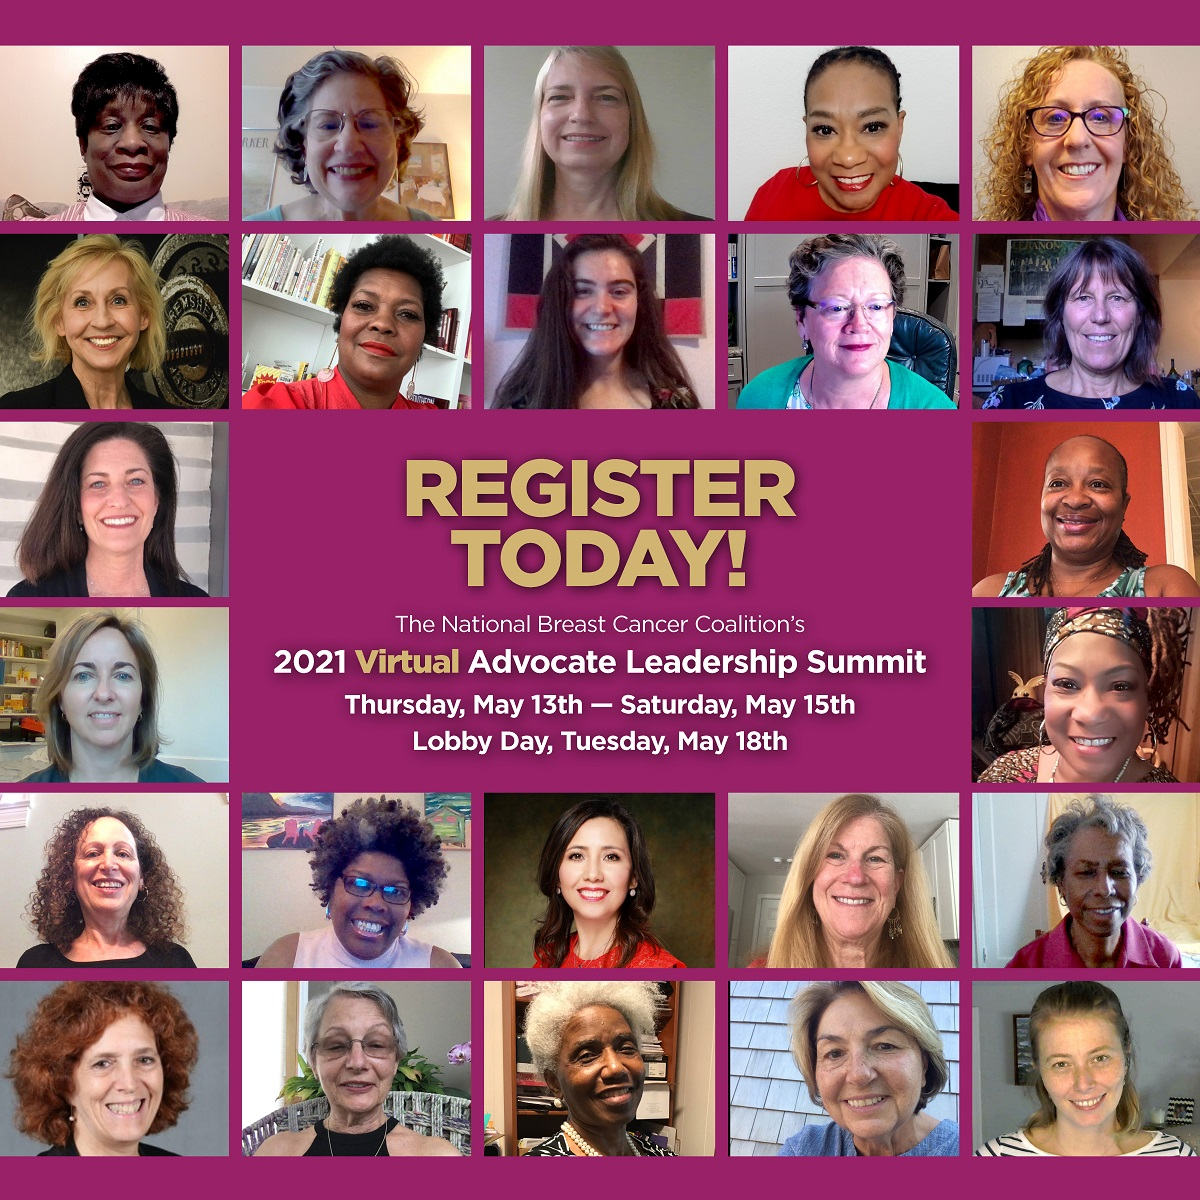 test Twitter Media - Join #NBCC in the fight to end #breastcancer and register today for the 2021 Virtual Advocate Leadership Summit! For registration information and program updates, visit https://t.co/pZ0fLwuCwH https://t.co/CC06S0eK4c